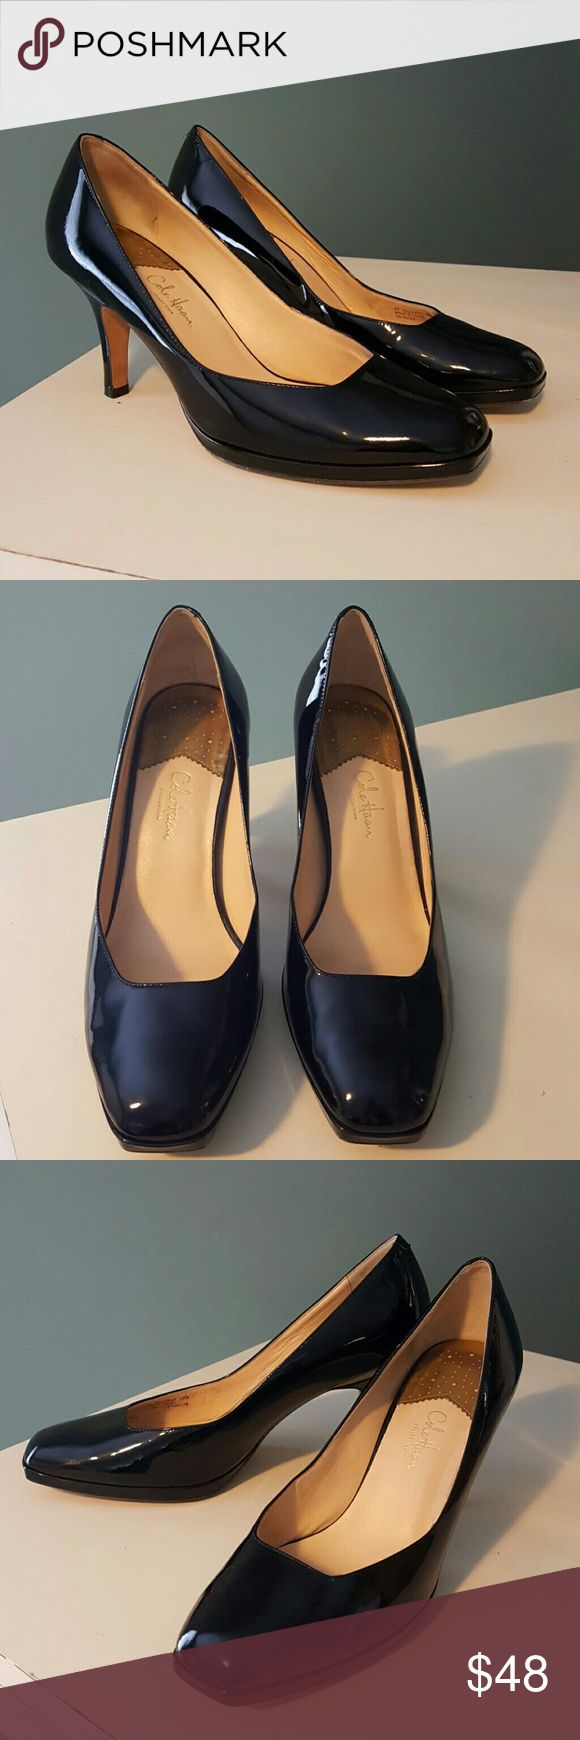 COLE HAAN *Chelsea* Black Patent Heel/Shoe Cole Haan classic black patent dress heels. These shoes are so classy! Nike Air sole for ultimate comfort. Size 10B. Heels measure 3-1/2. There are some numbers written on the sole. Cole Haan Shoes Heels